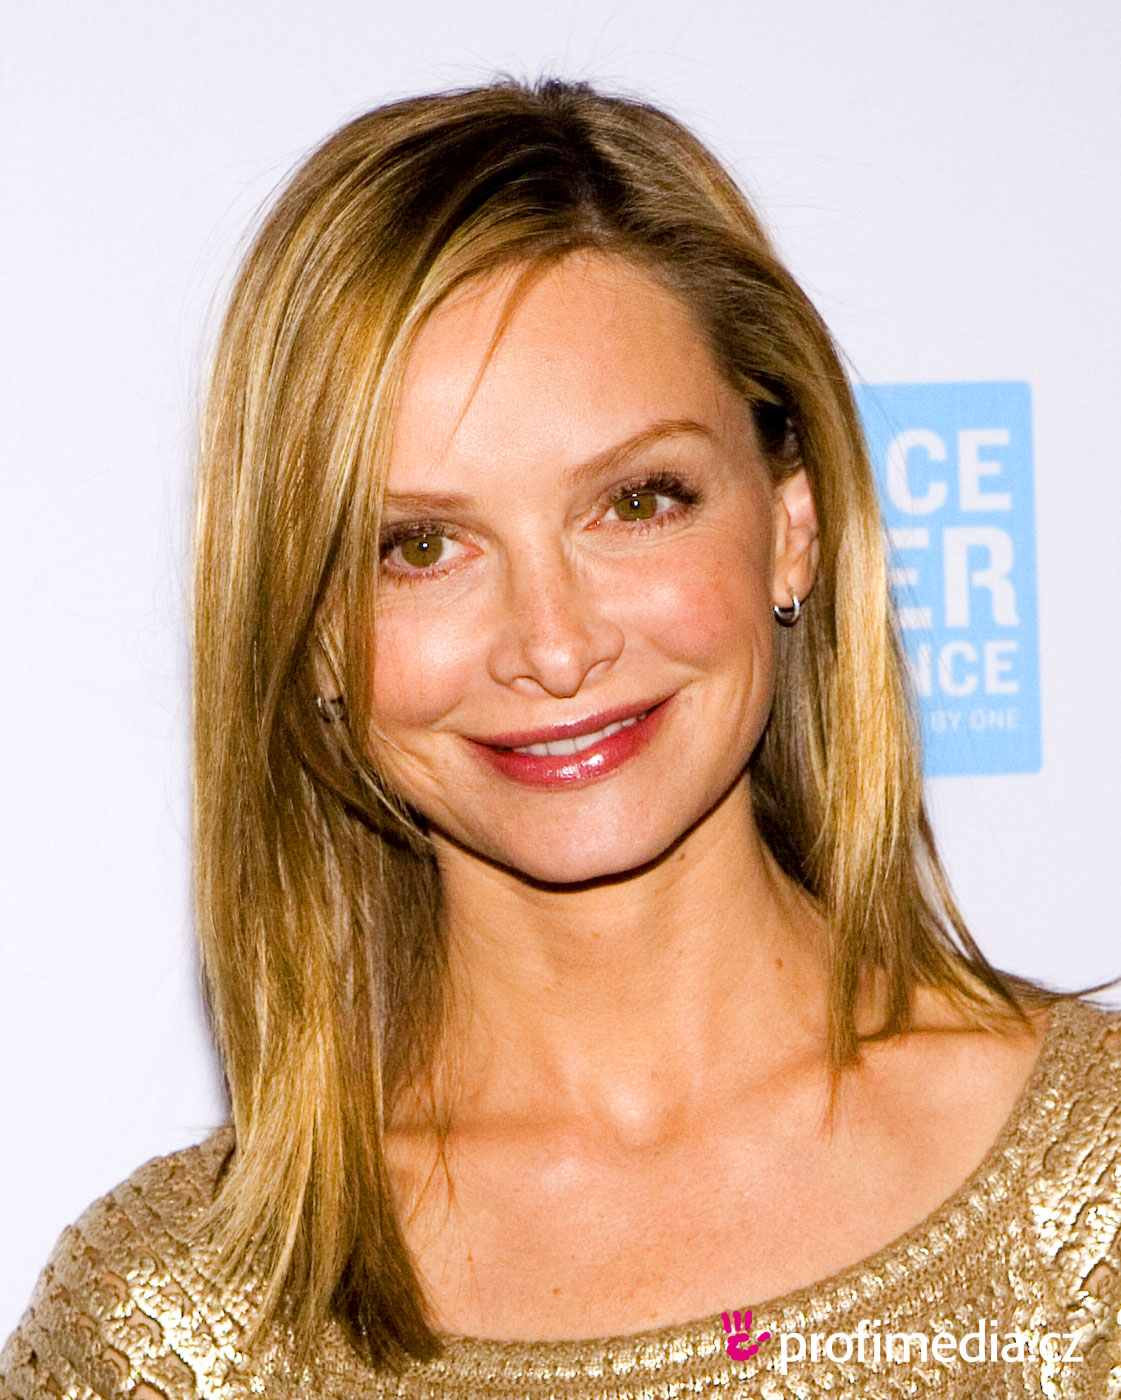 Calista Flockhart - Images Gallery